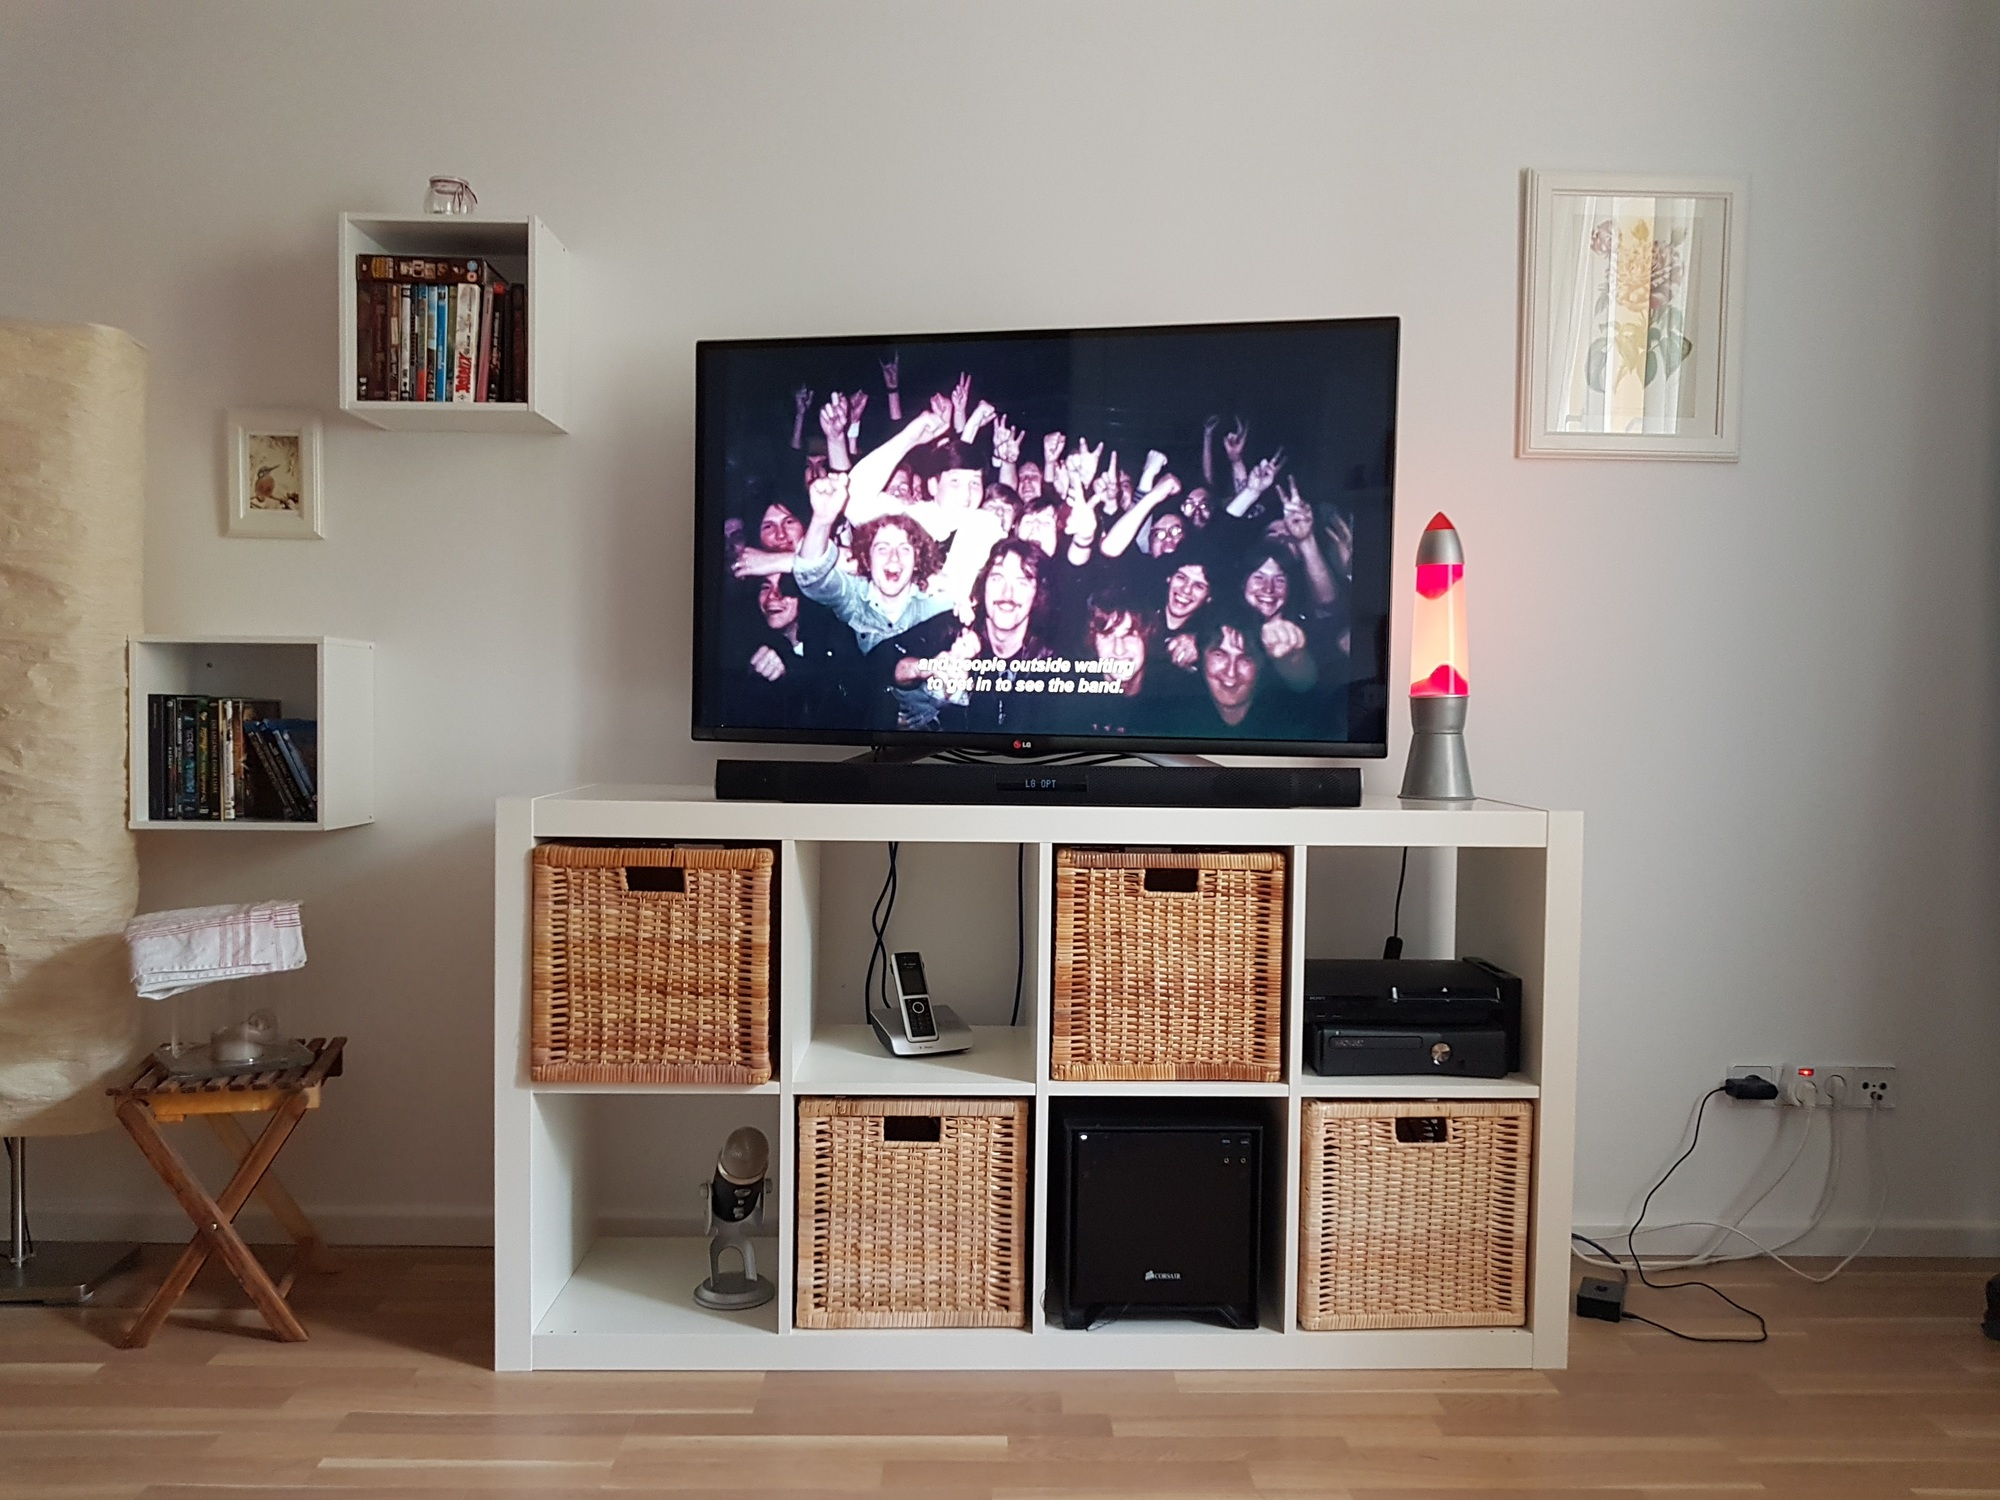 Any living room cable management tipps? - Home Theater ...